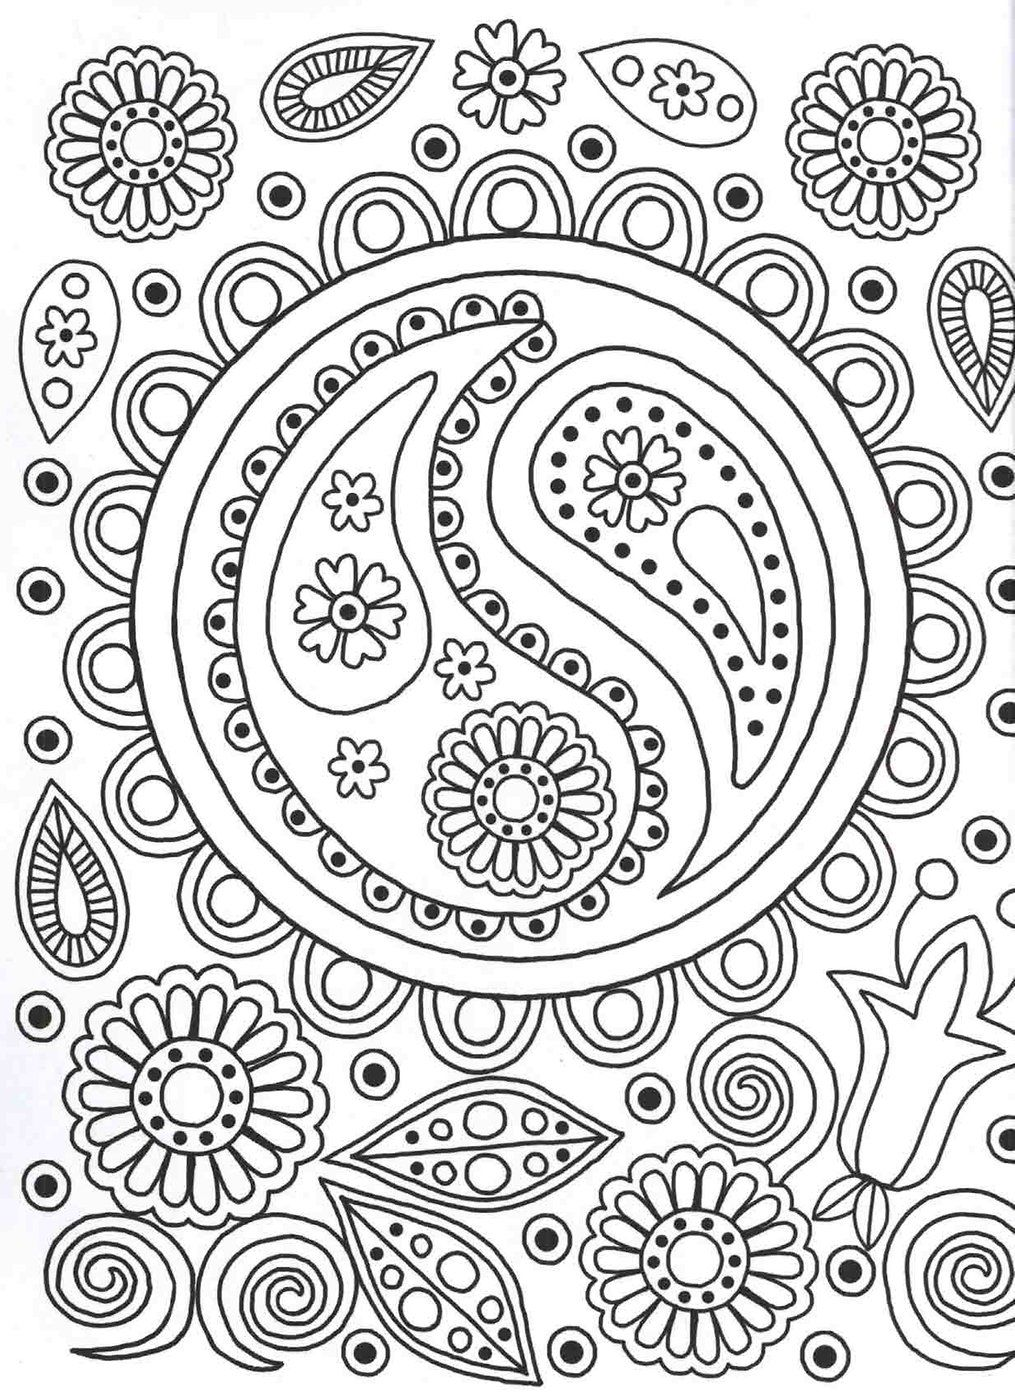 Ying Yang colouring page Patterns Colouring Book art